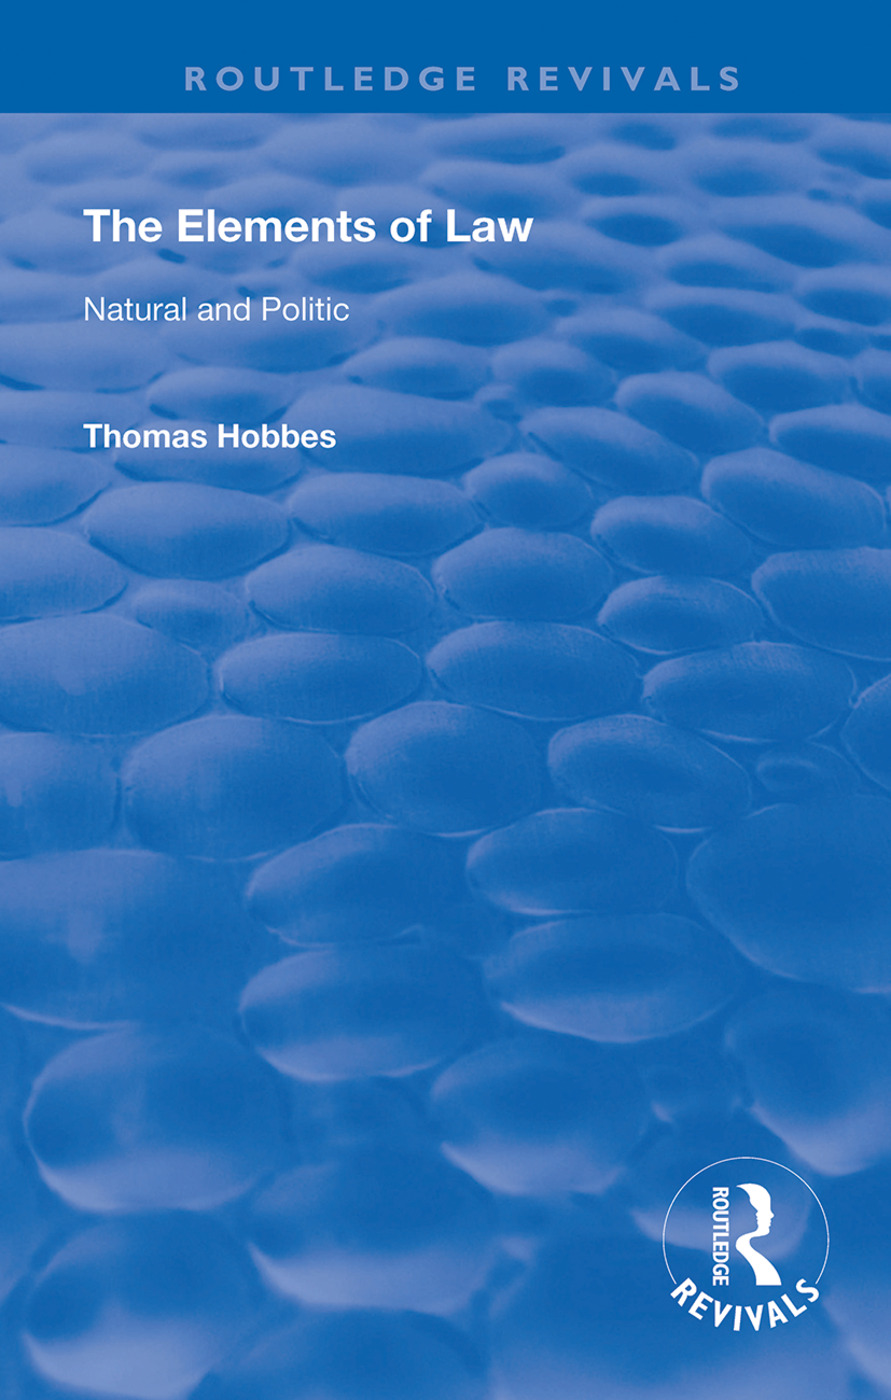 The Elements of Law: Natural and Politic book cover